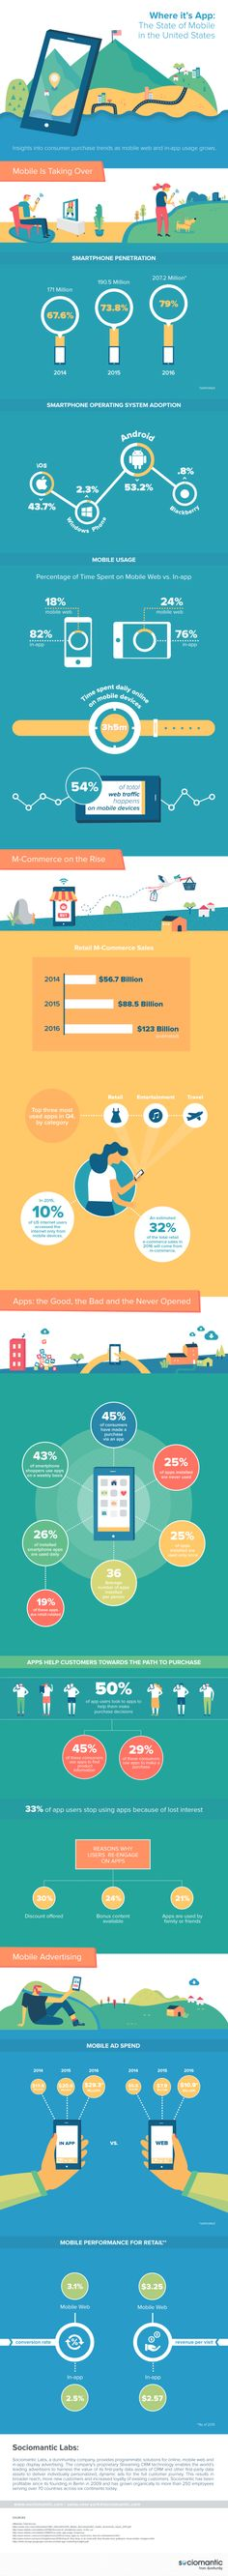 The State of Mobile in the United States.  #mobile #stateofmobile #US